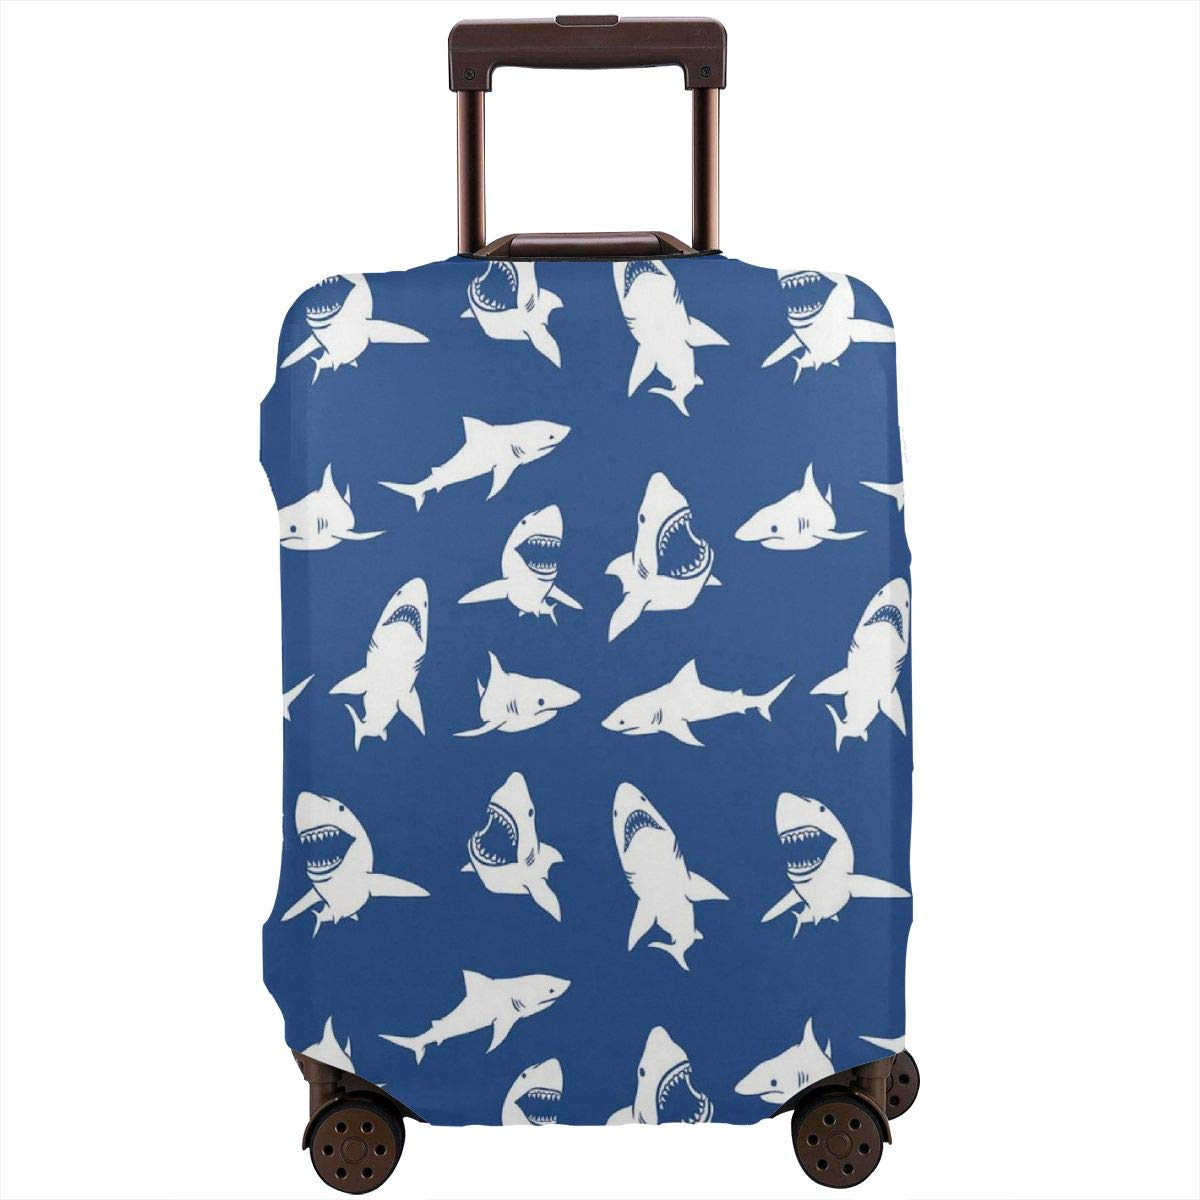 Luggage Cover Shark Danger Humor Nautical Design Protective Travel Trunk Case Elastic Luggage Suitcase Protector Cover